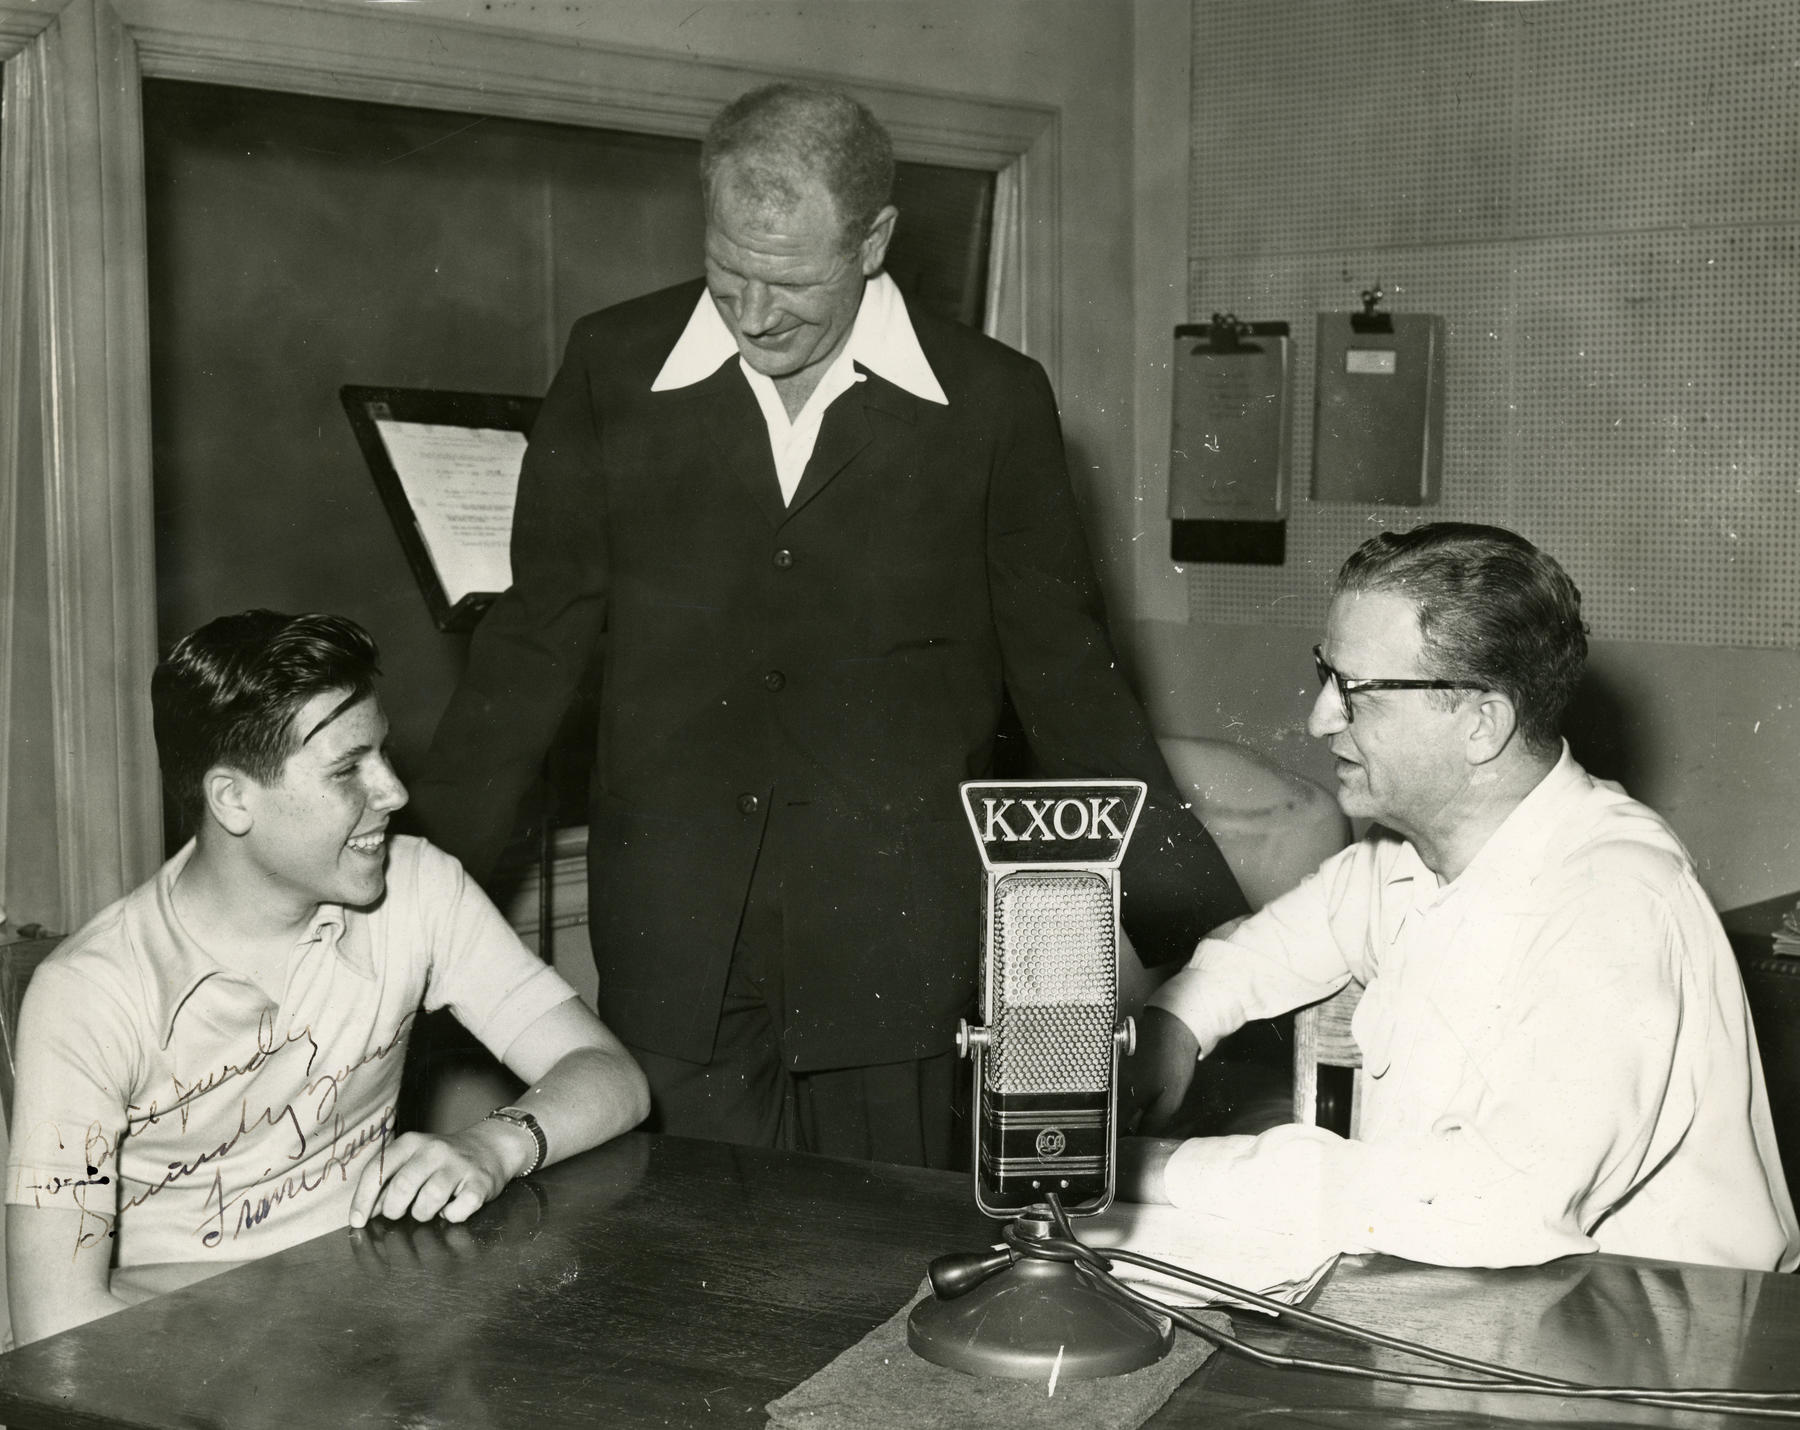 Bill Veeck with Bill Purdy, left, and France Laux, right, during a KXOX interview. Laux signed the photograph in the lower left corner. BL-363.2009.3 (KXOX Inc. / National Baseball Hall of Fame Library)